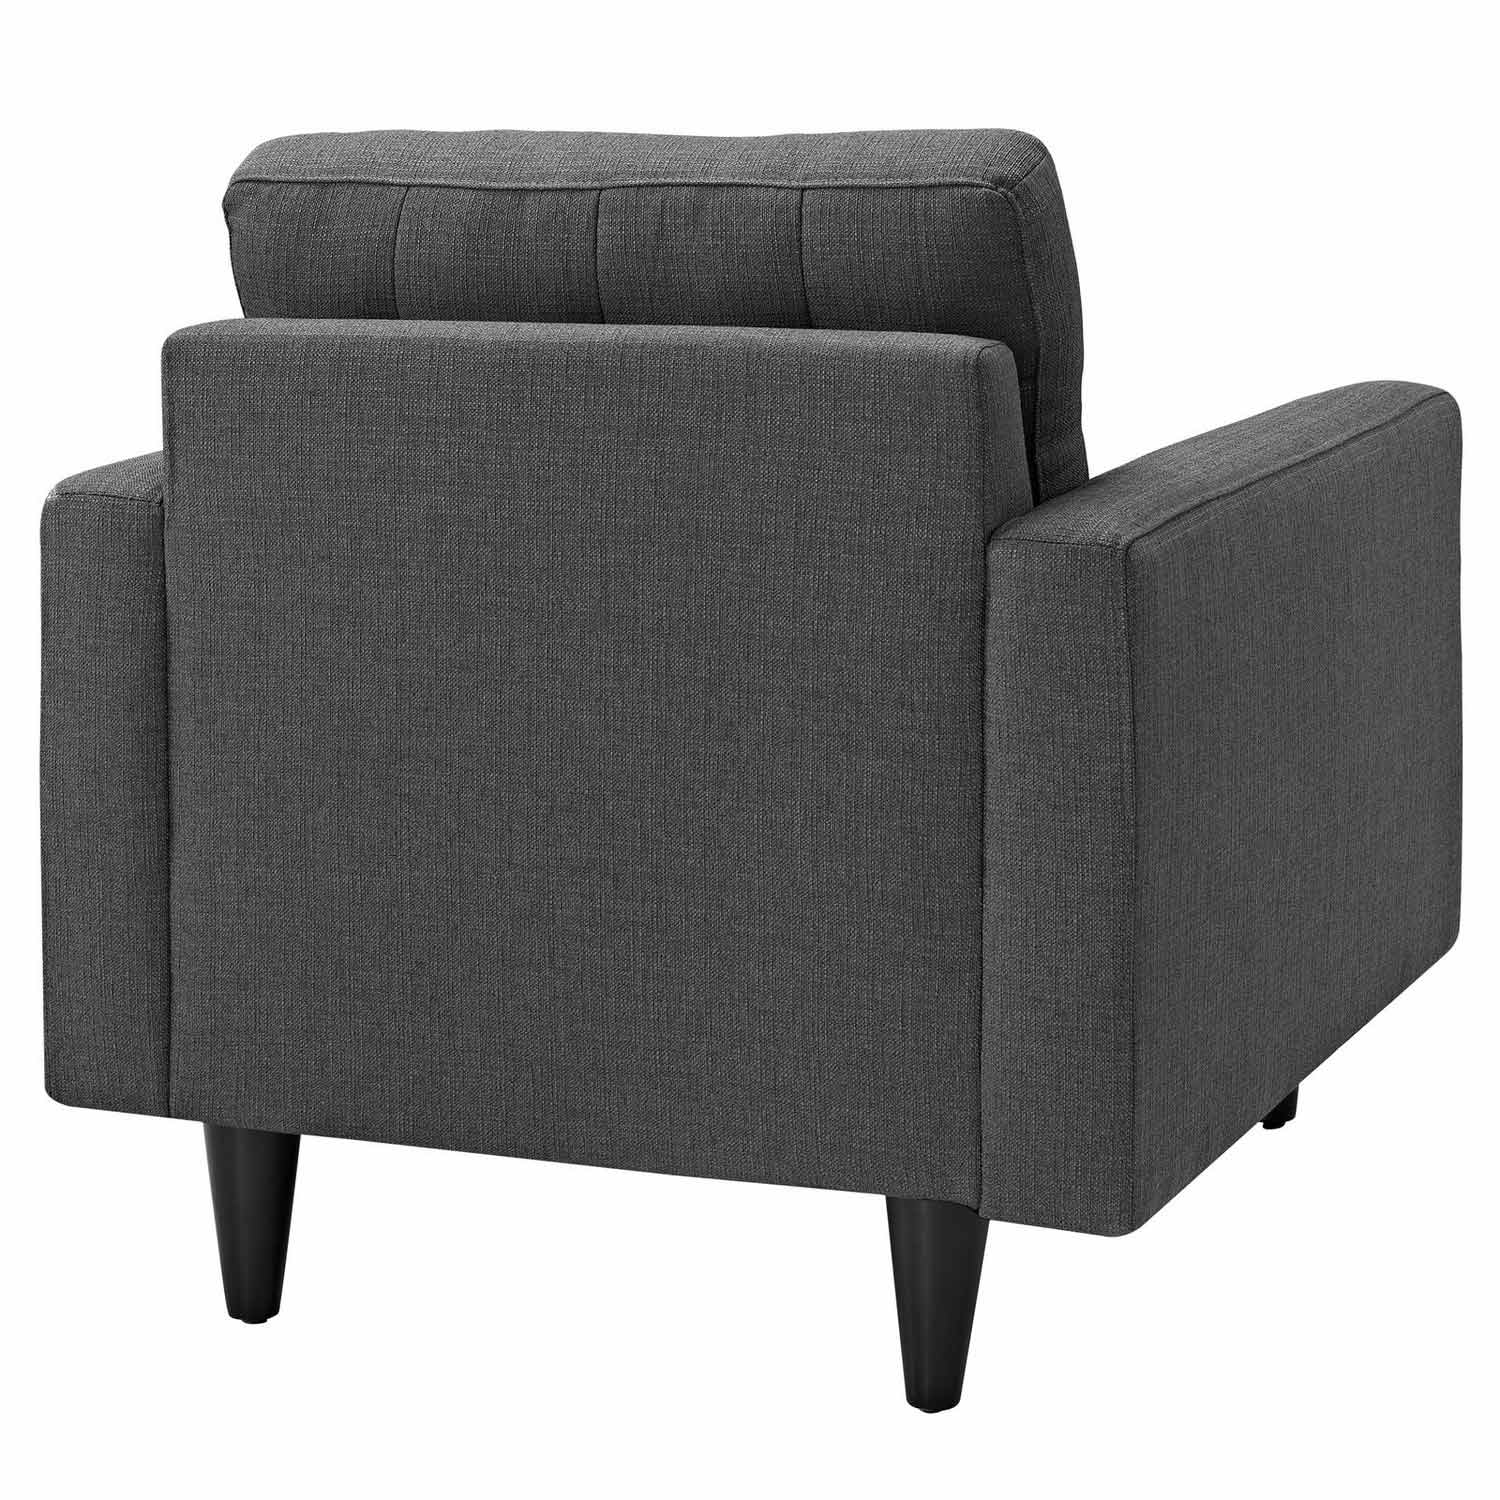 Modway Empress Upholstered Armchair - Gray